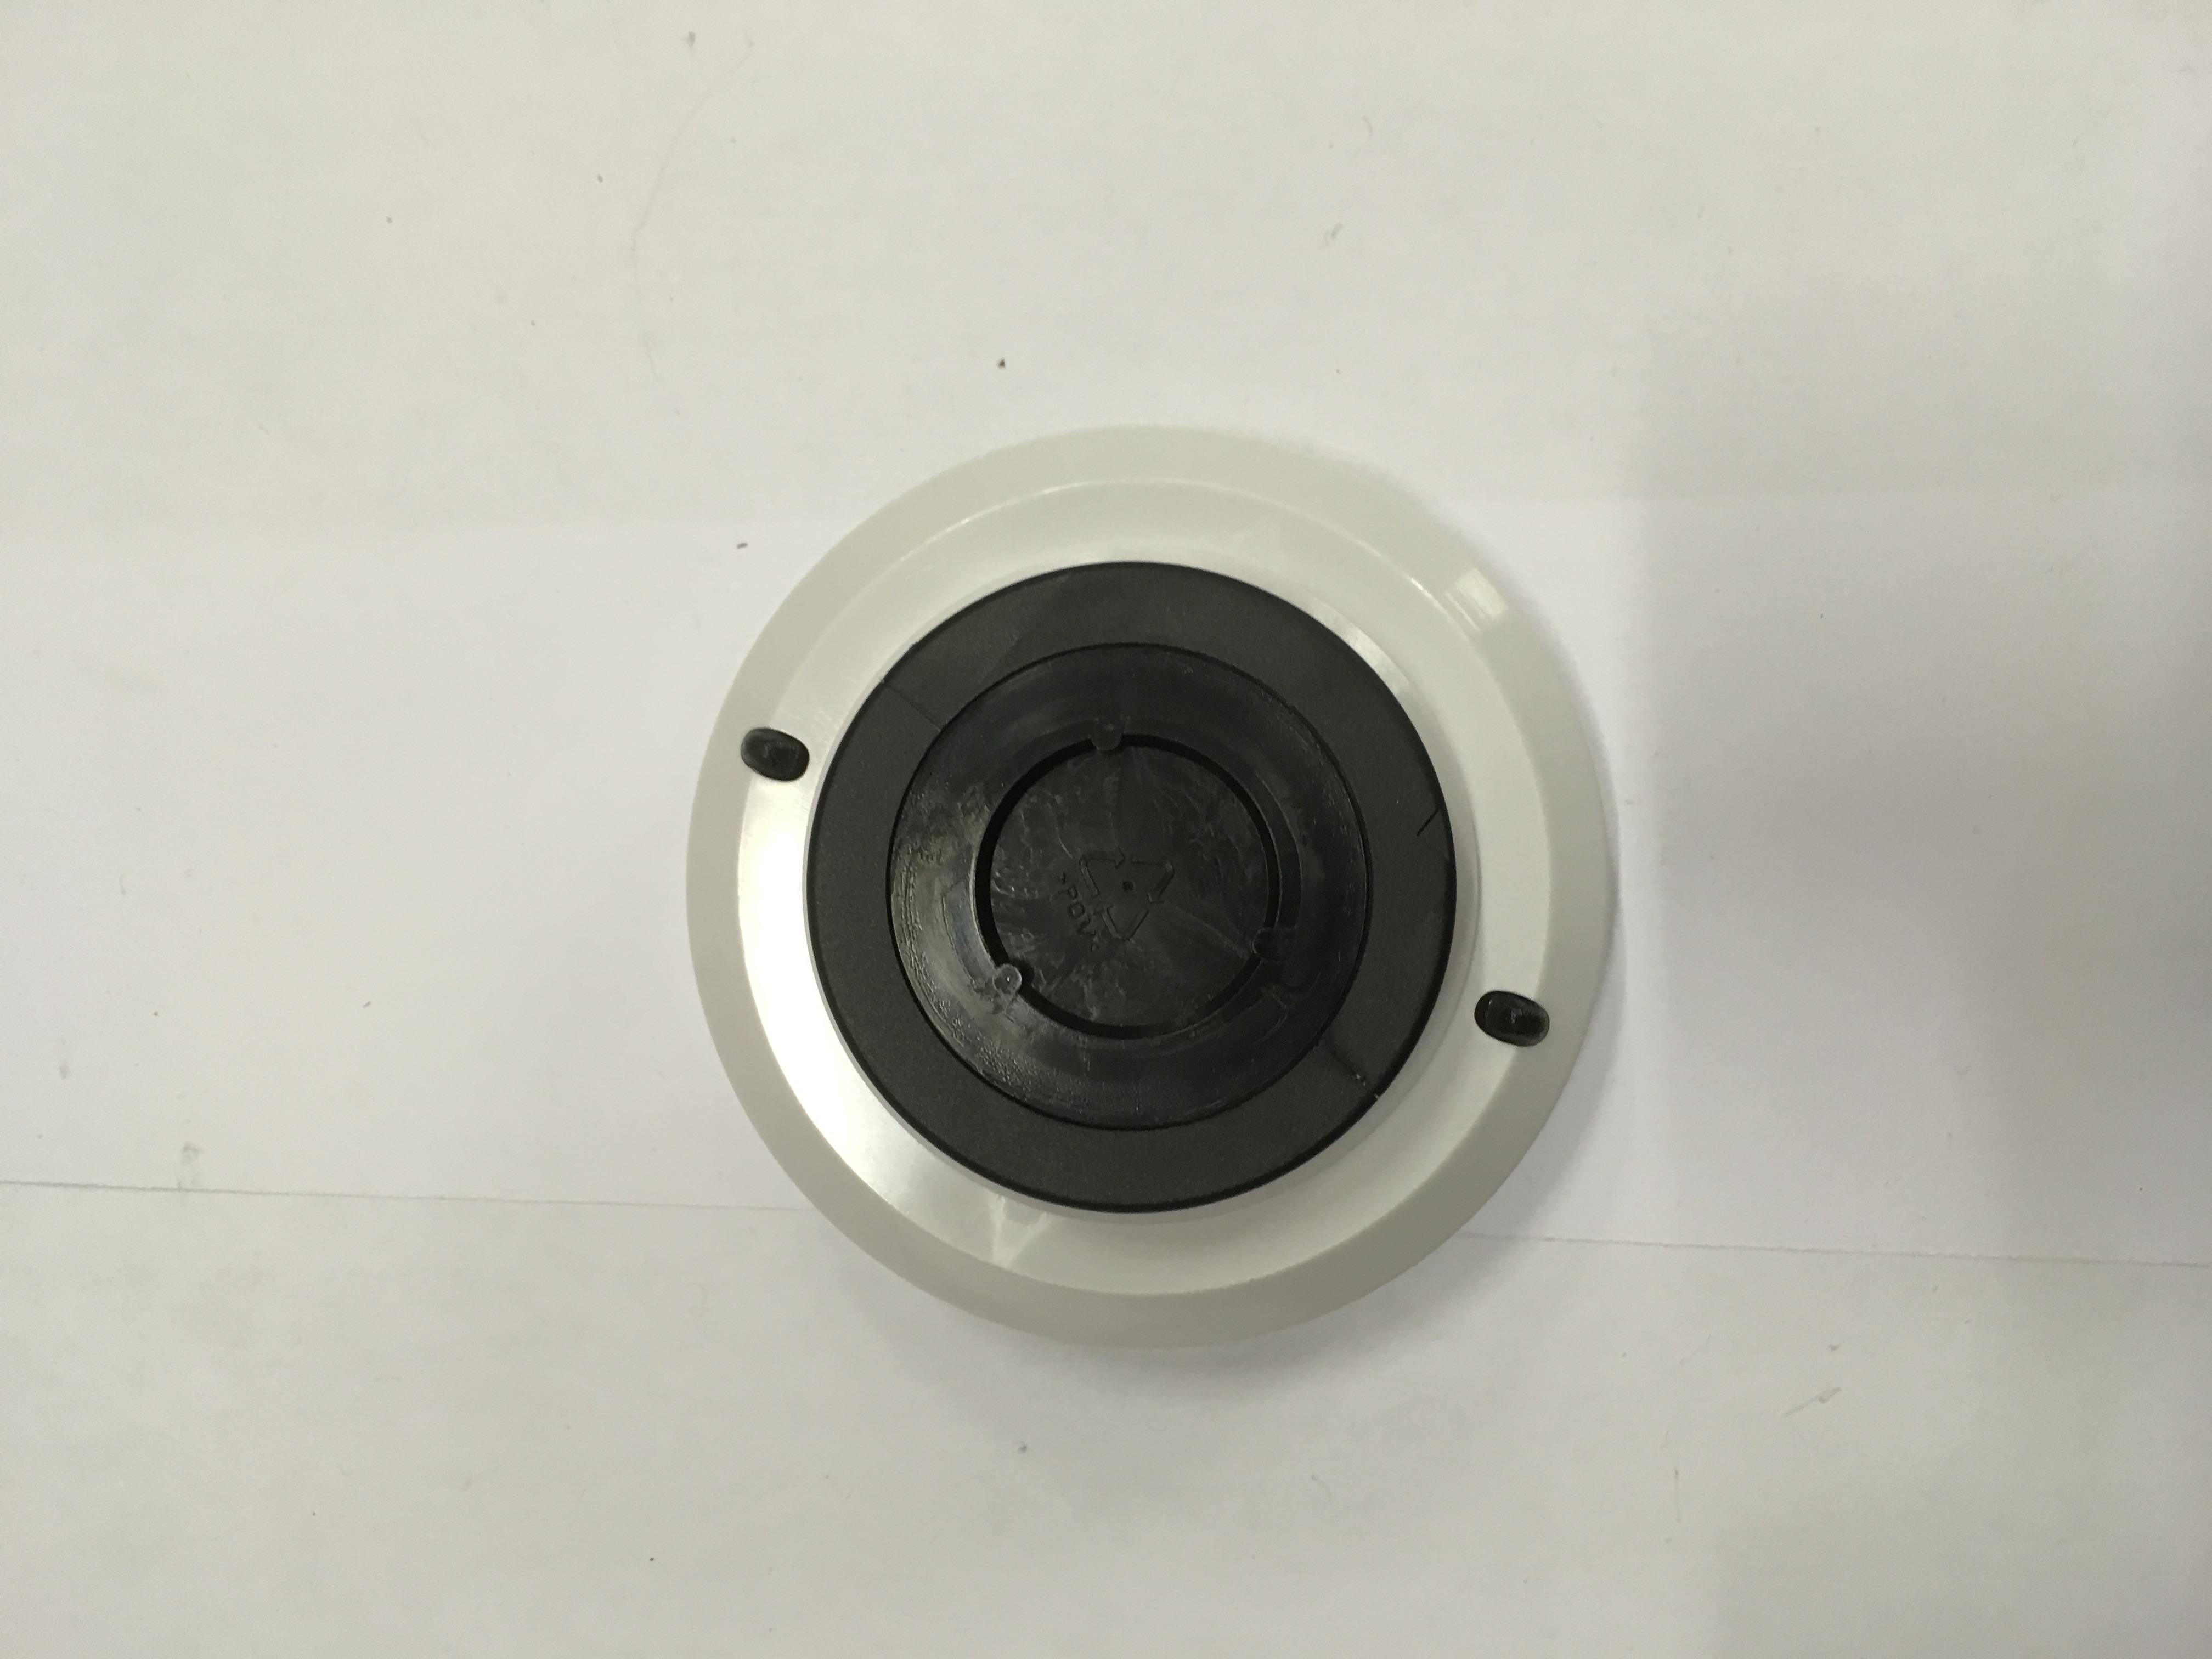 NOTIFIER-623 | Replacement sensor for FL0xxxE-HS